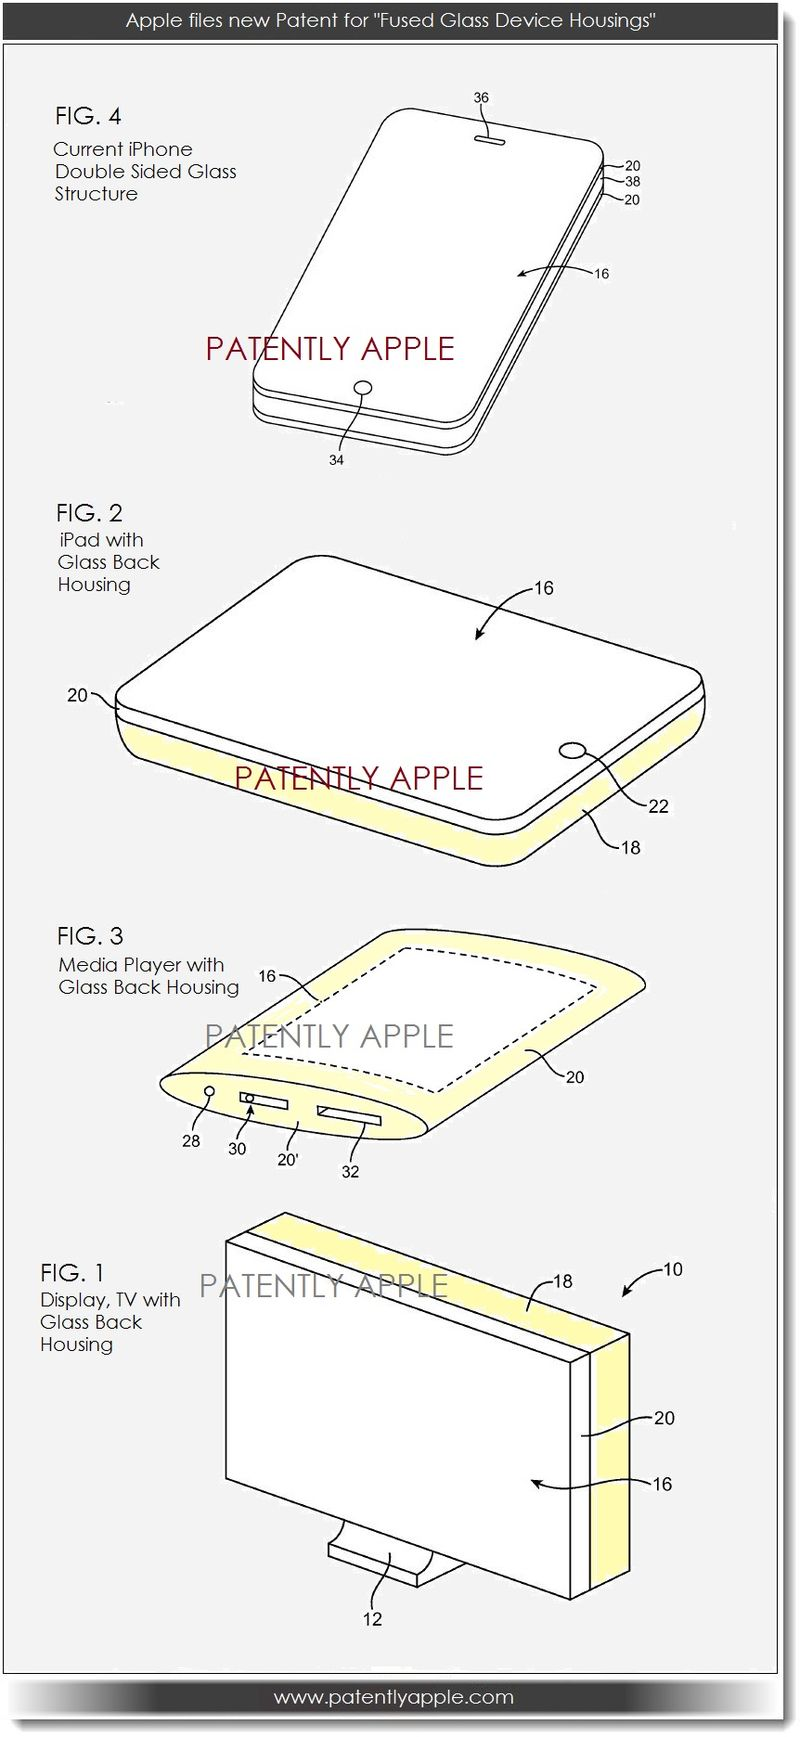 2A. Apple files for patent in Europe for Glass Back Housings for iPad, iPod, Display - TV